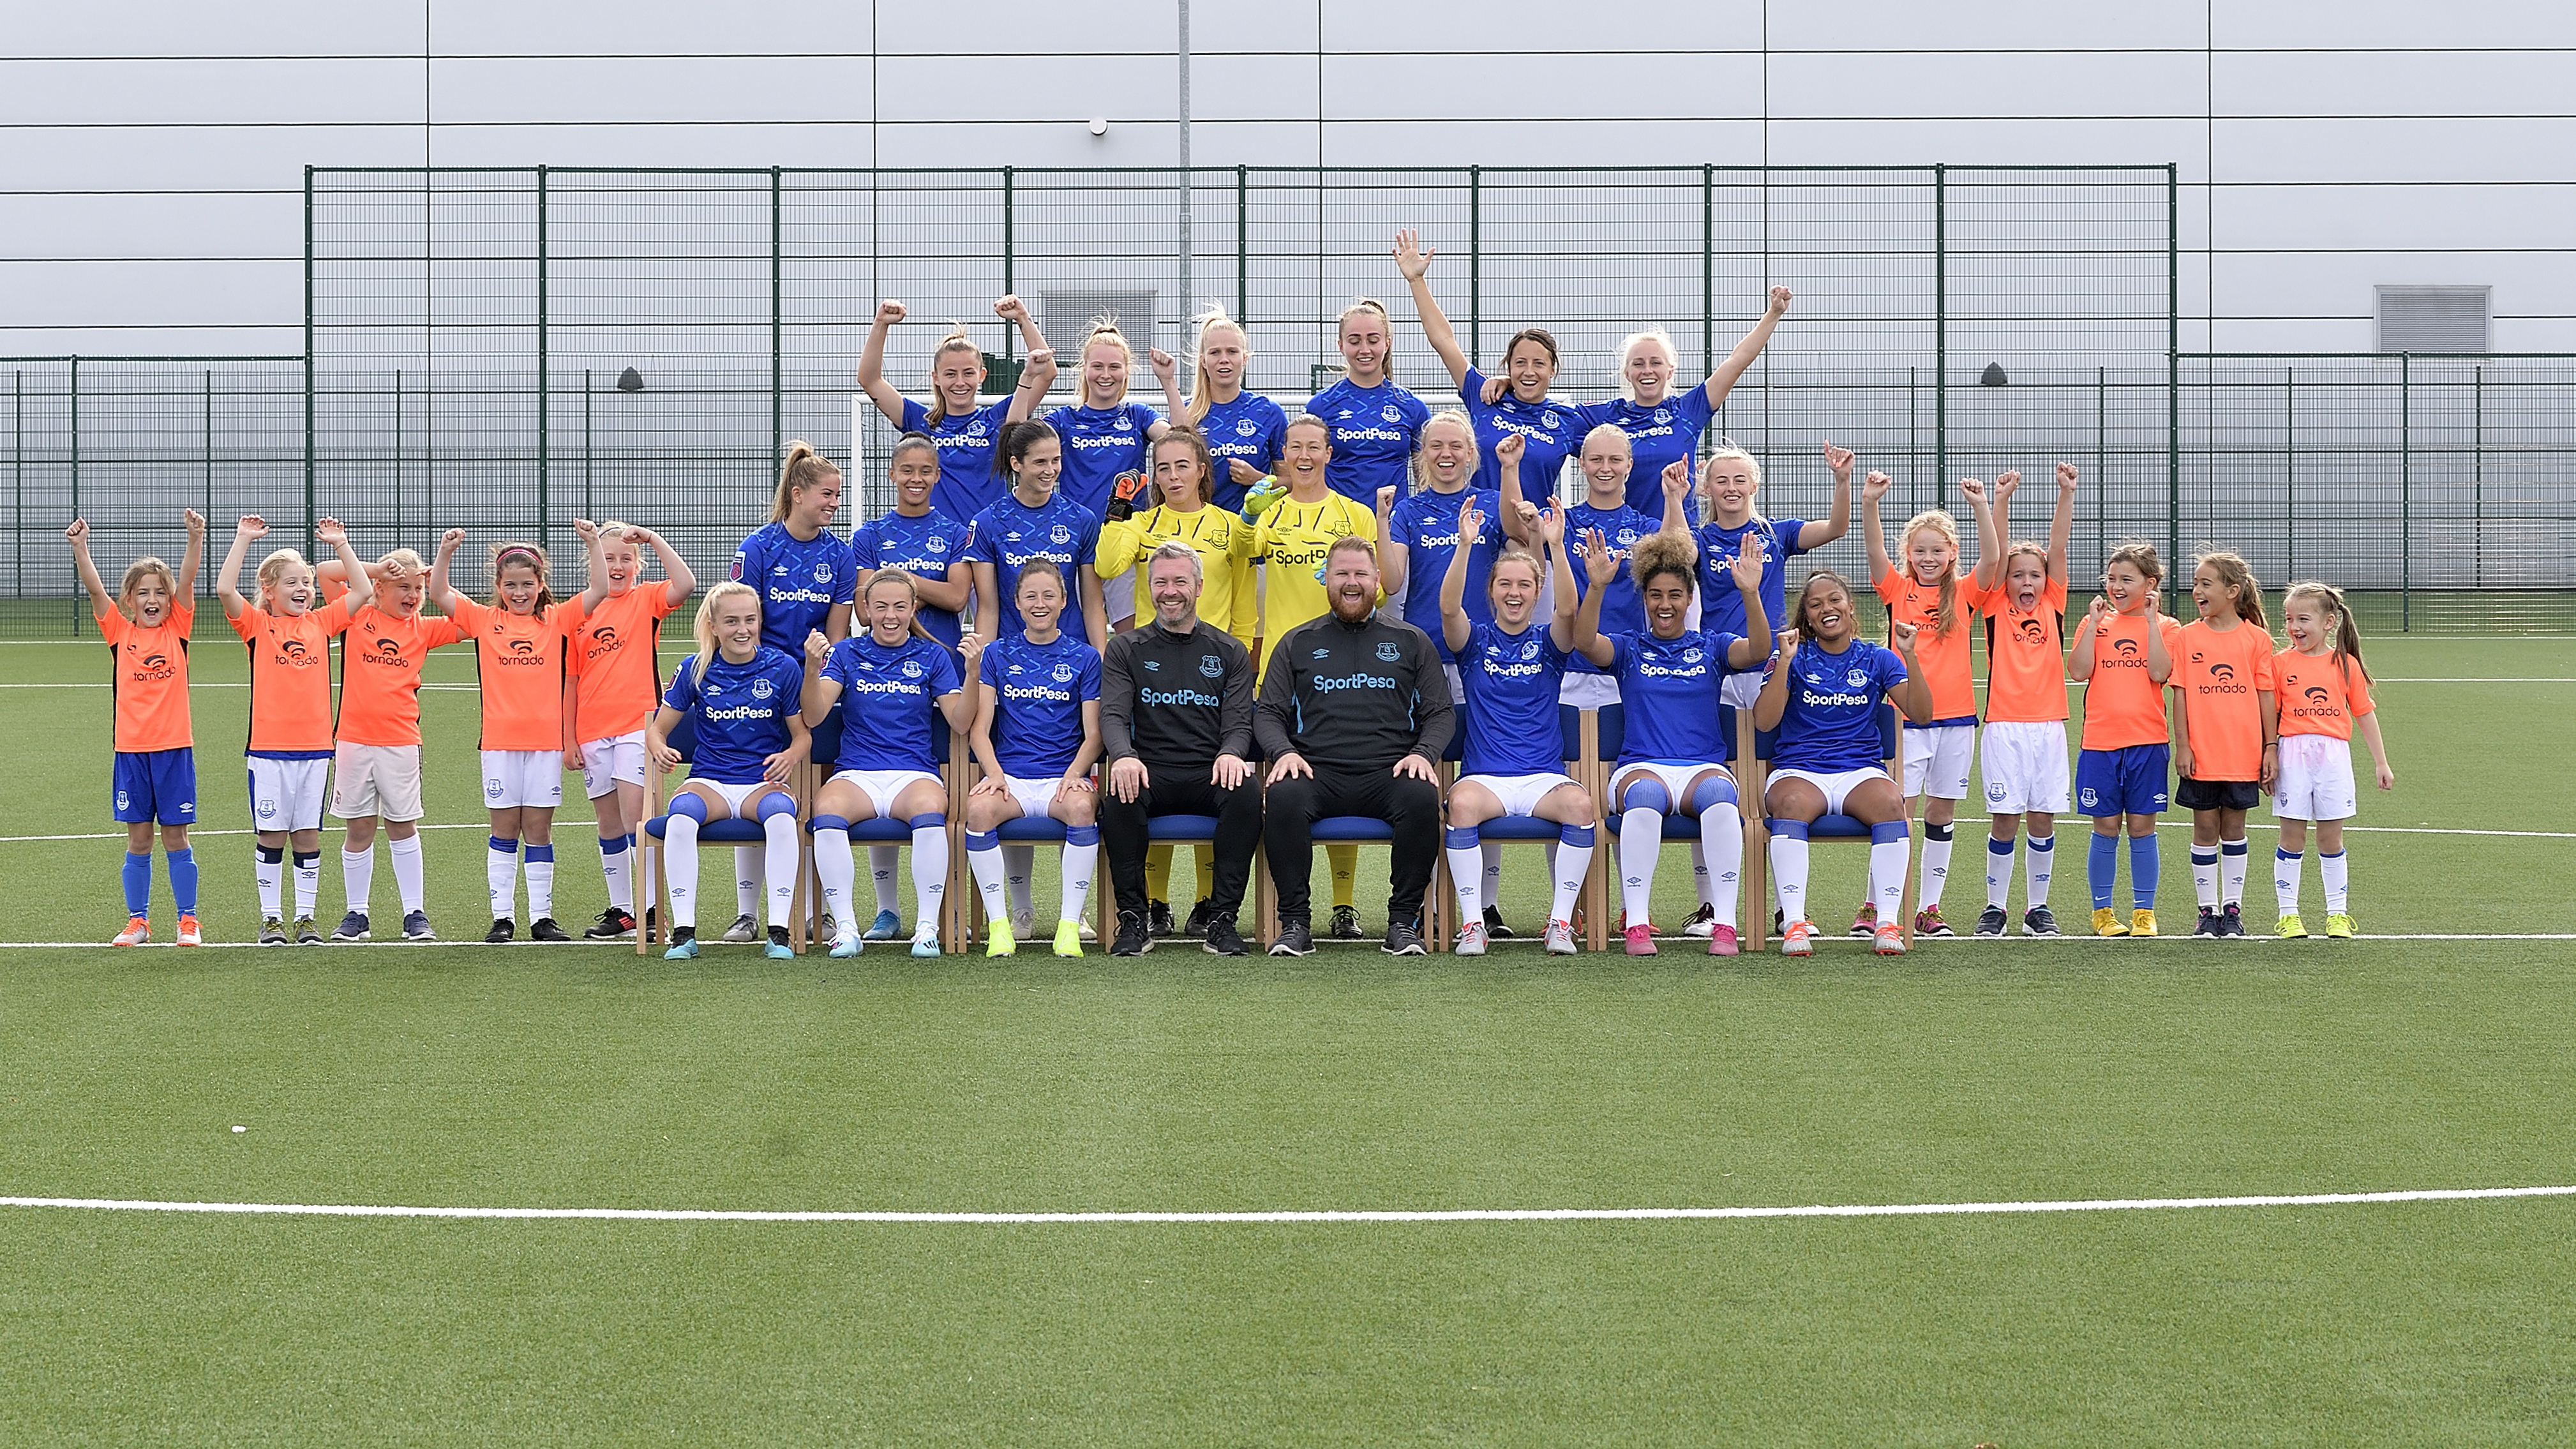 Watch Girls Team Invited To Join Everton Team Photo